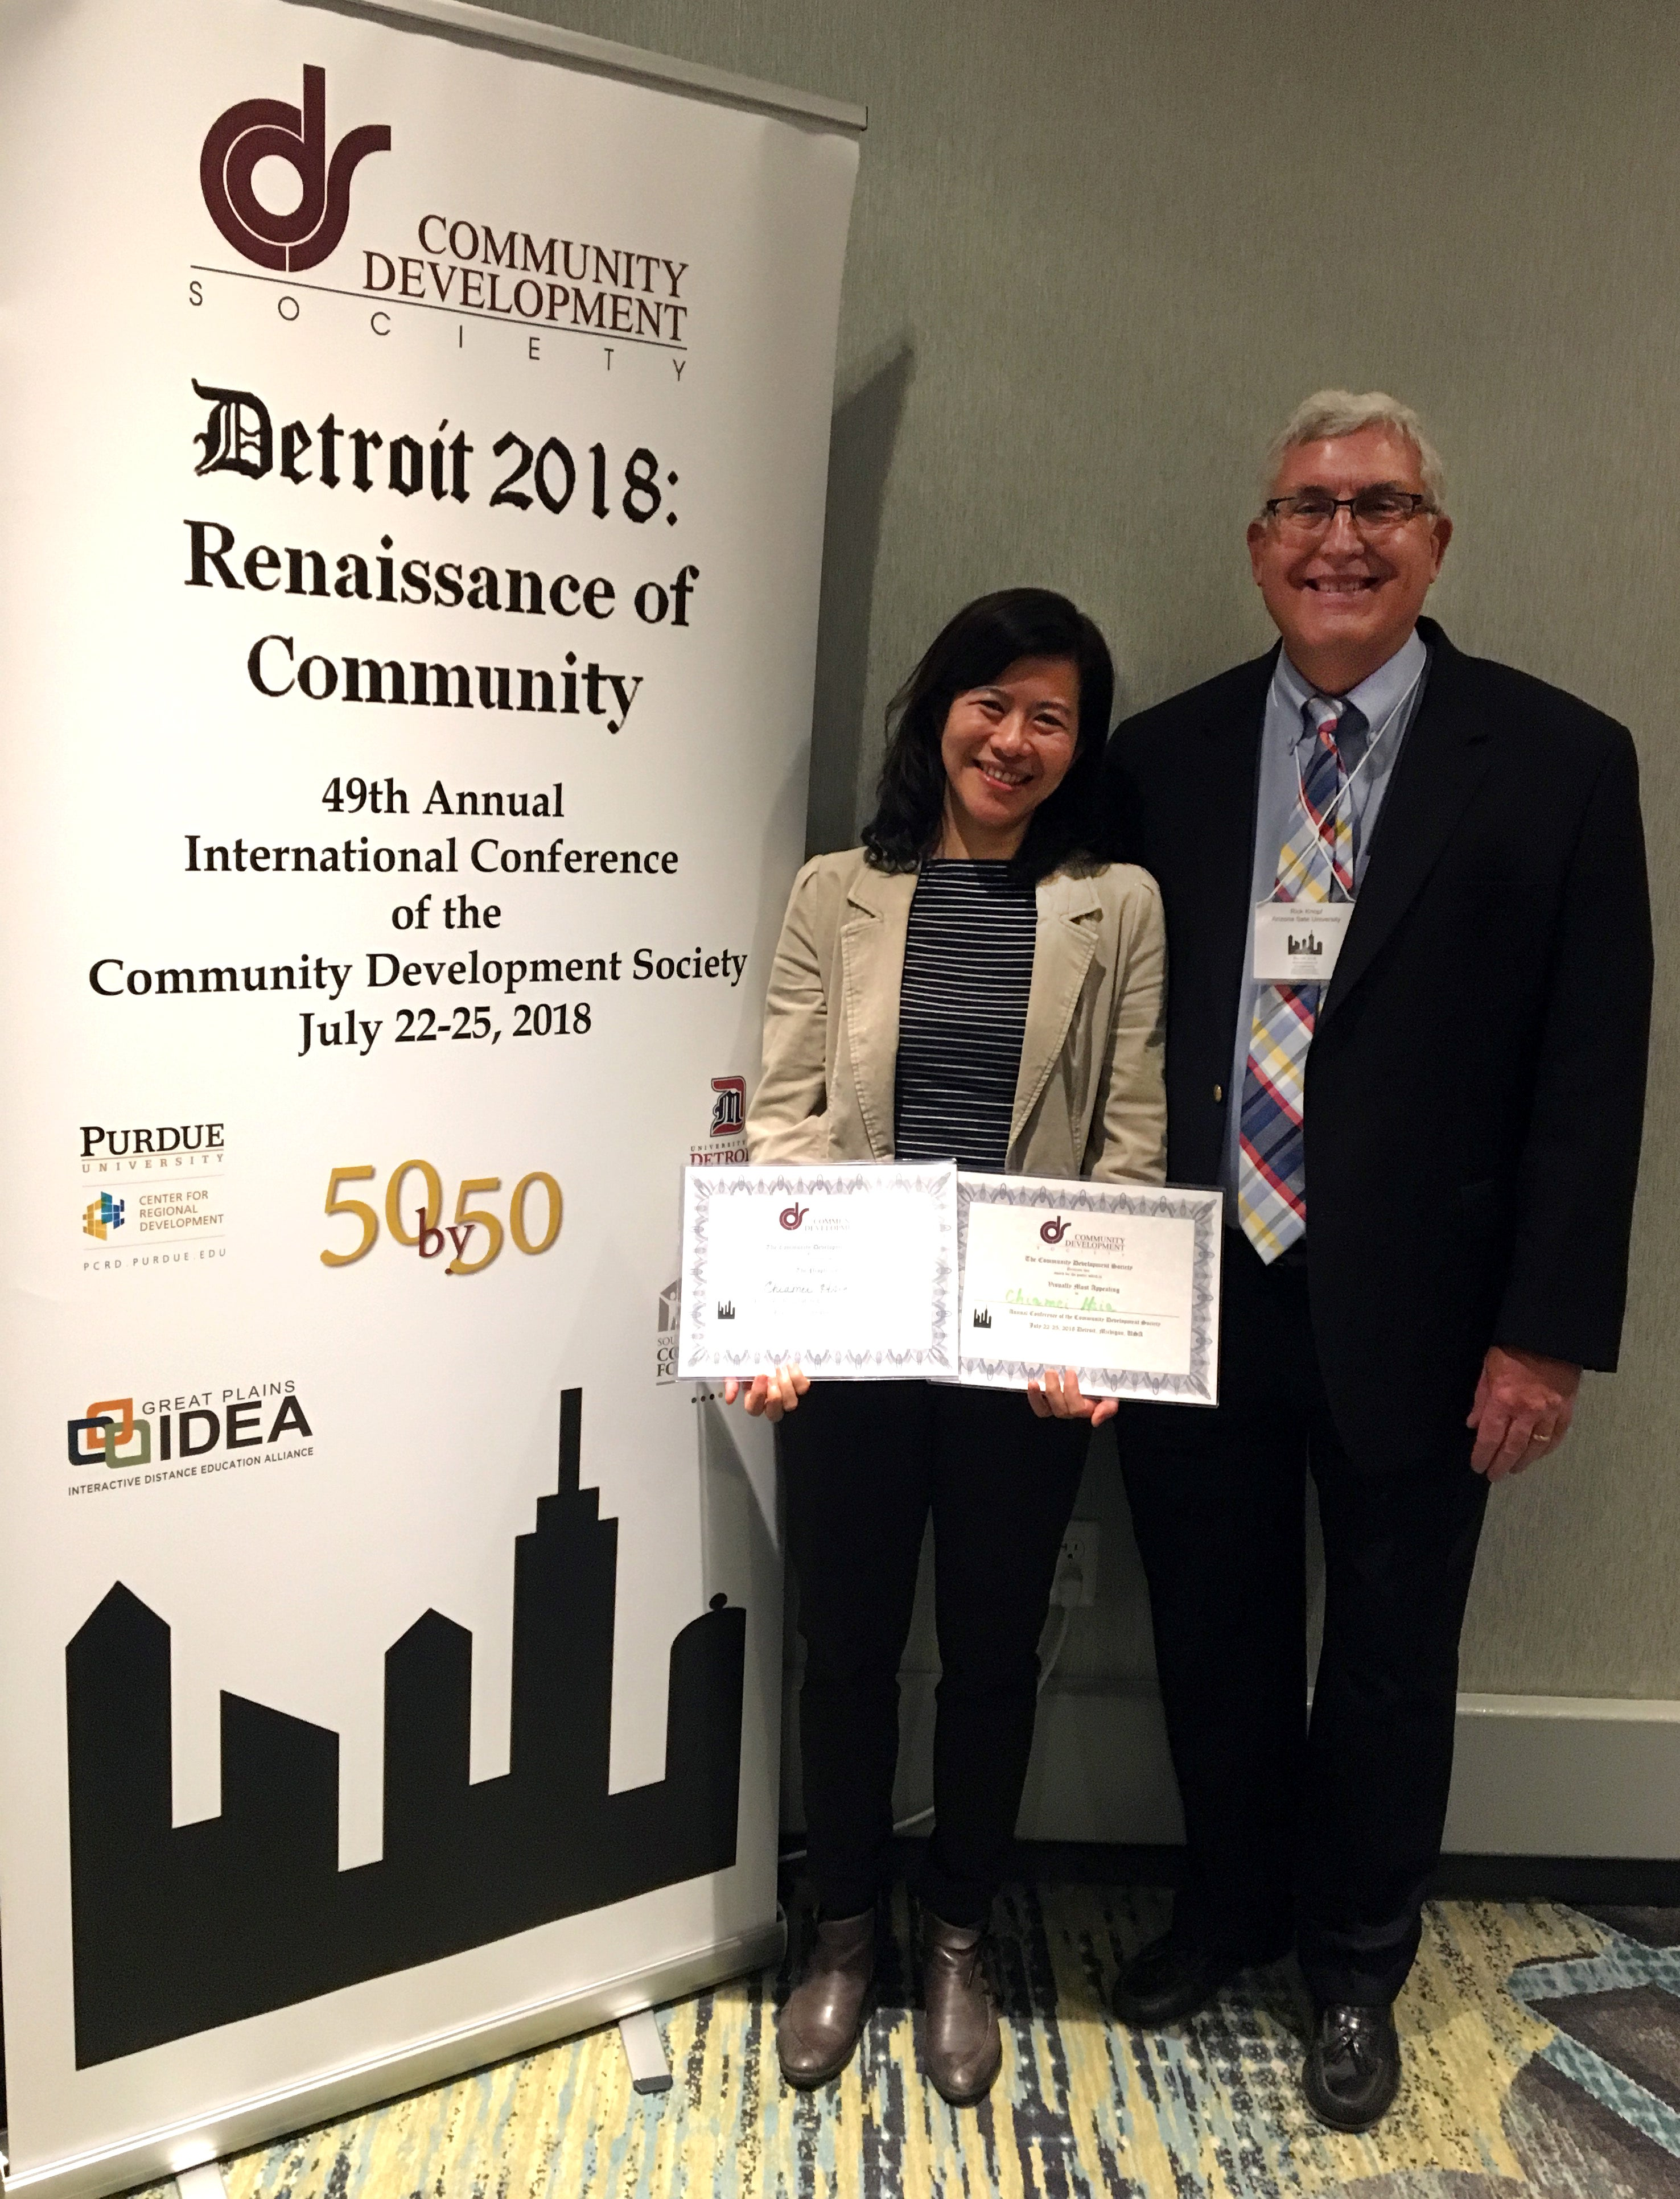 Chiamei Hsia stands with Richard Knopf in front of conference banner holding her awards